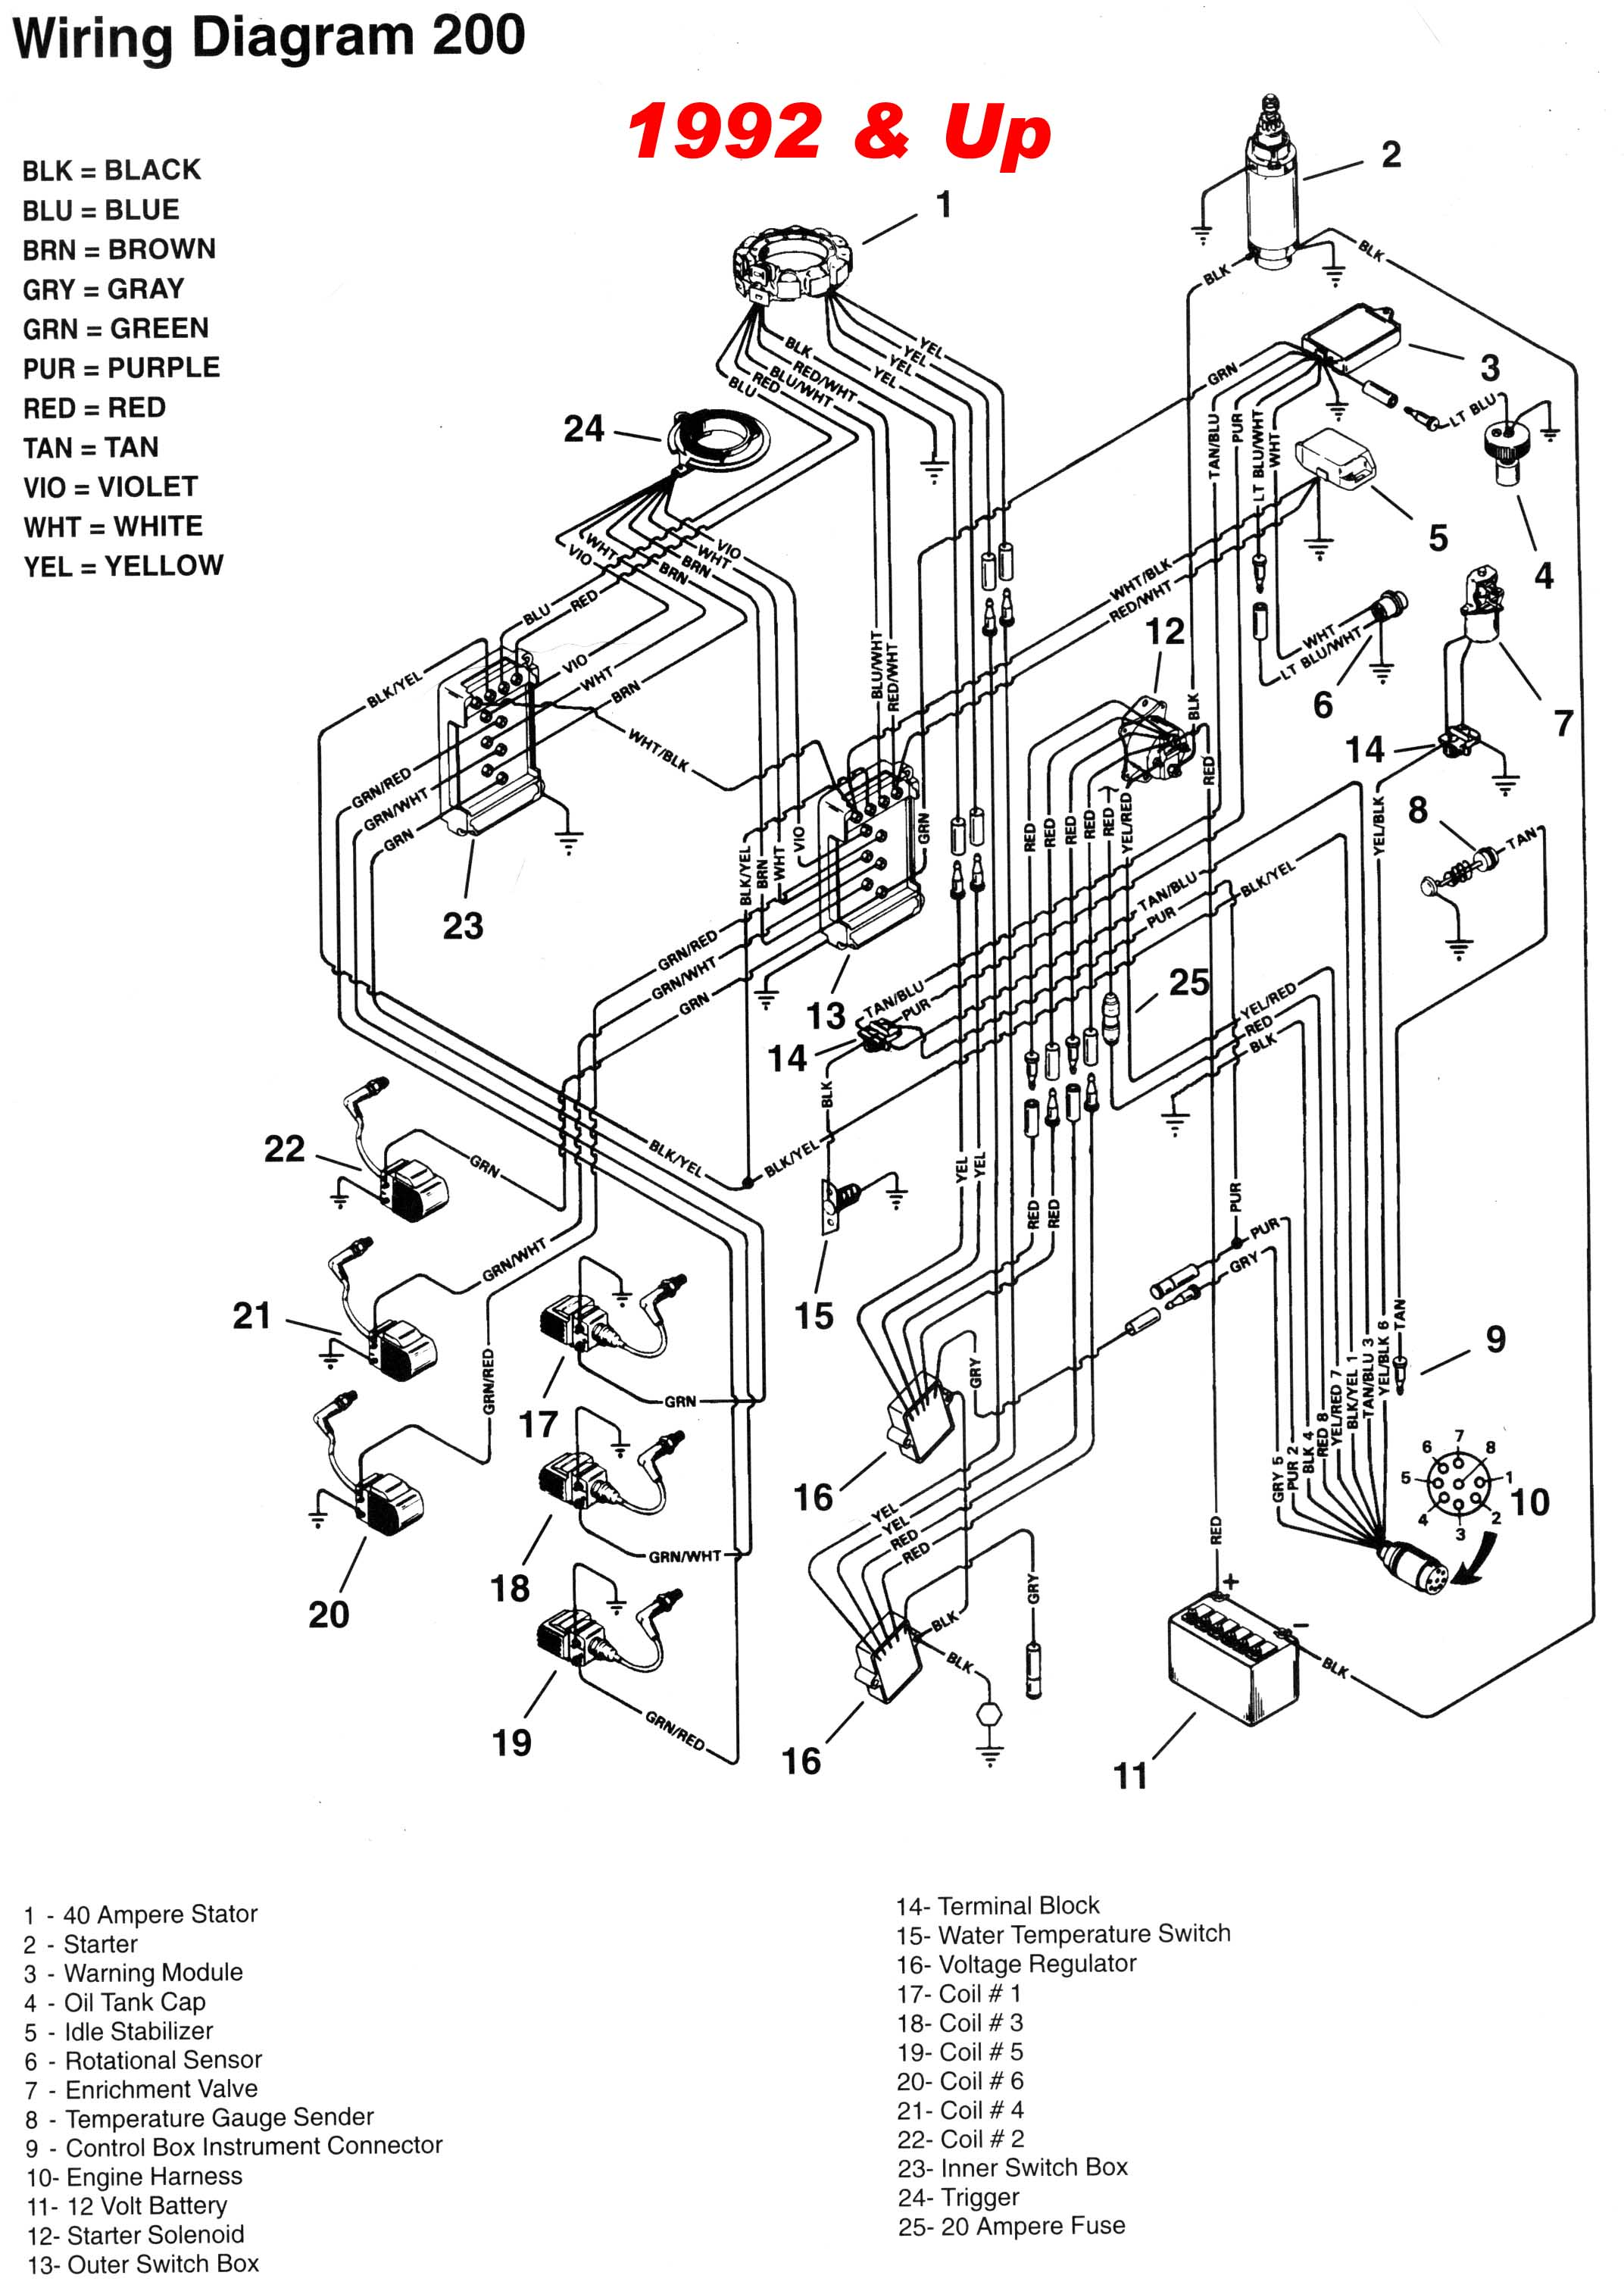 mercury_92up_200_wiring mercury outboard 2 5 and 3 0l v6 and gearcase faq 1979 Mercury 115 Wiring Harness Diagram at alyssarenee.co